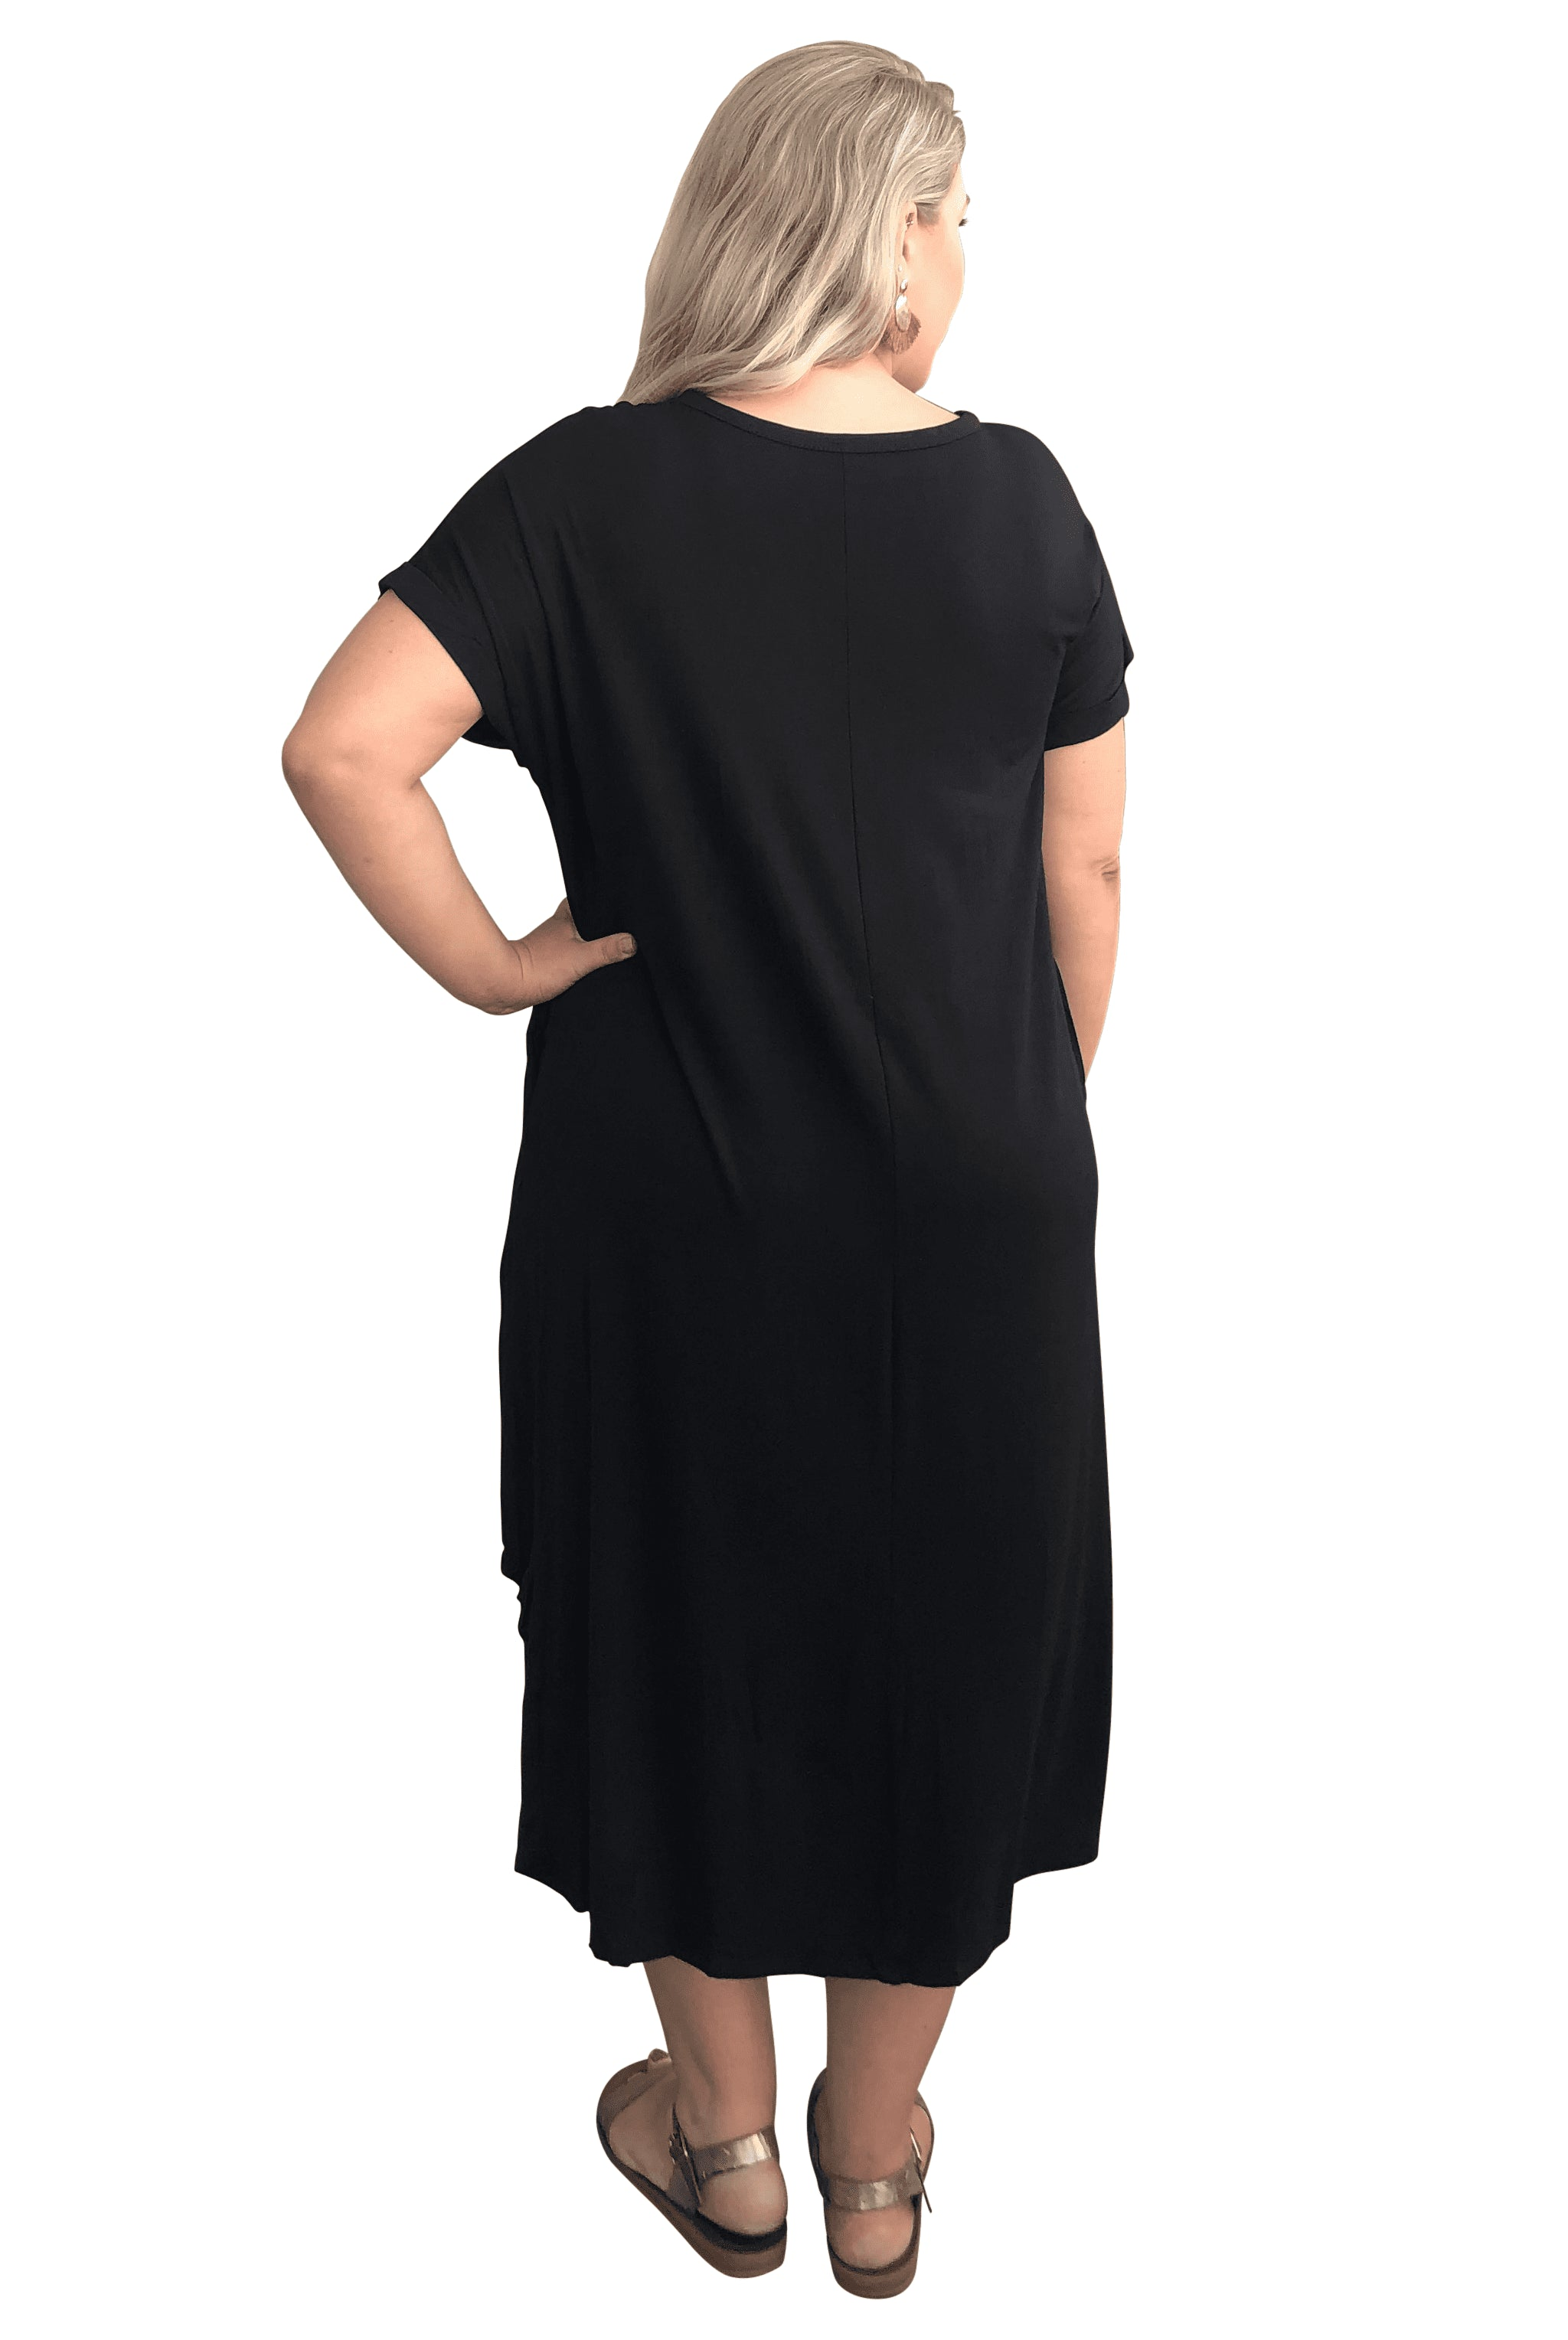 plus size T-Shirt Dress XL / AUS 14 - 16 Alexis Dress - Black